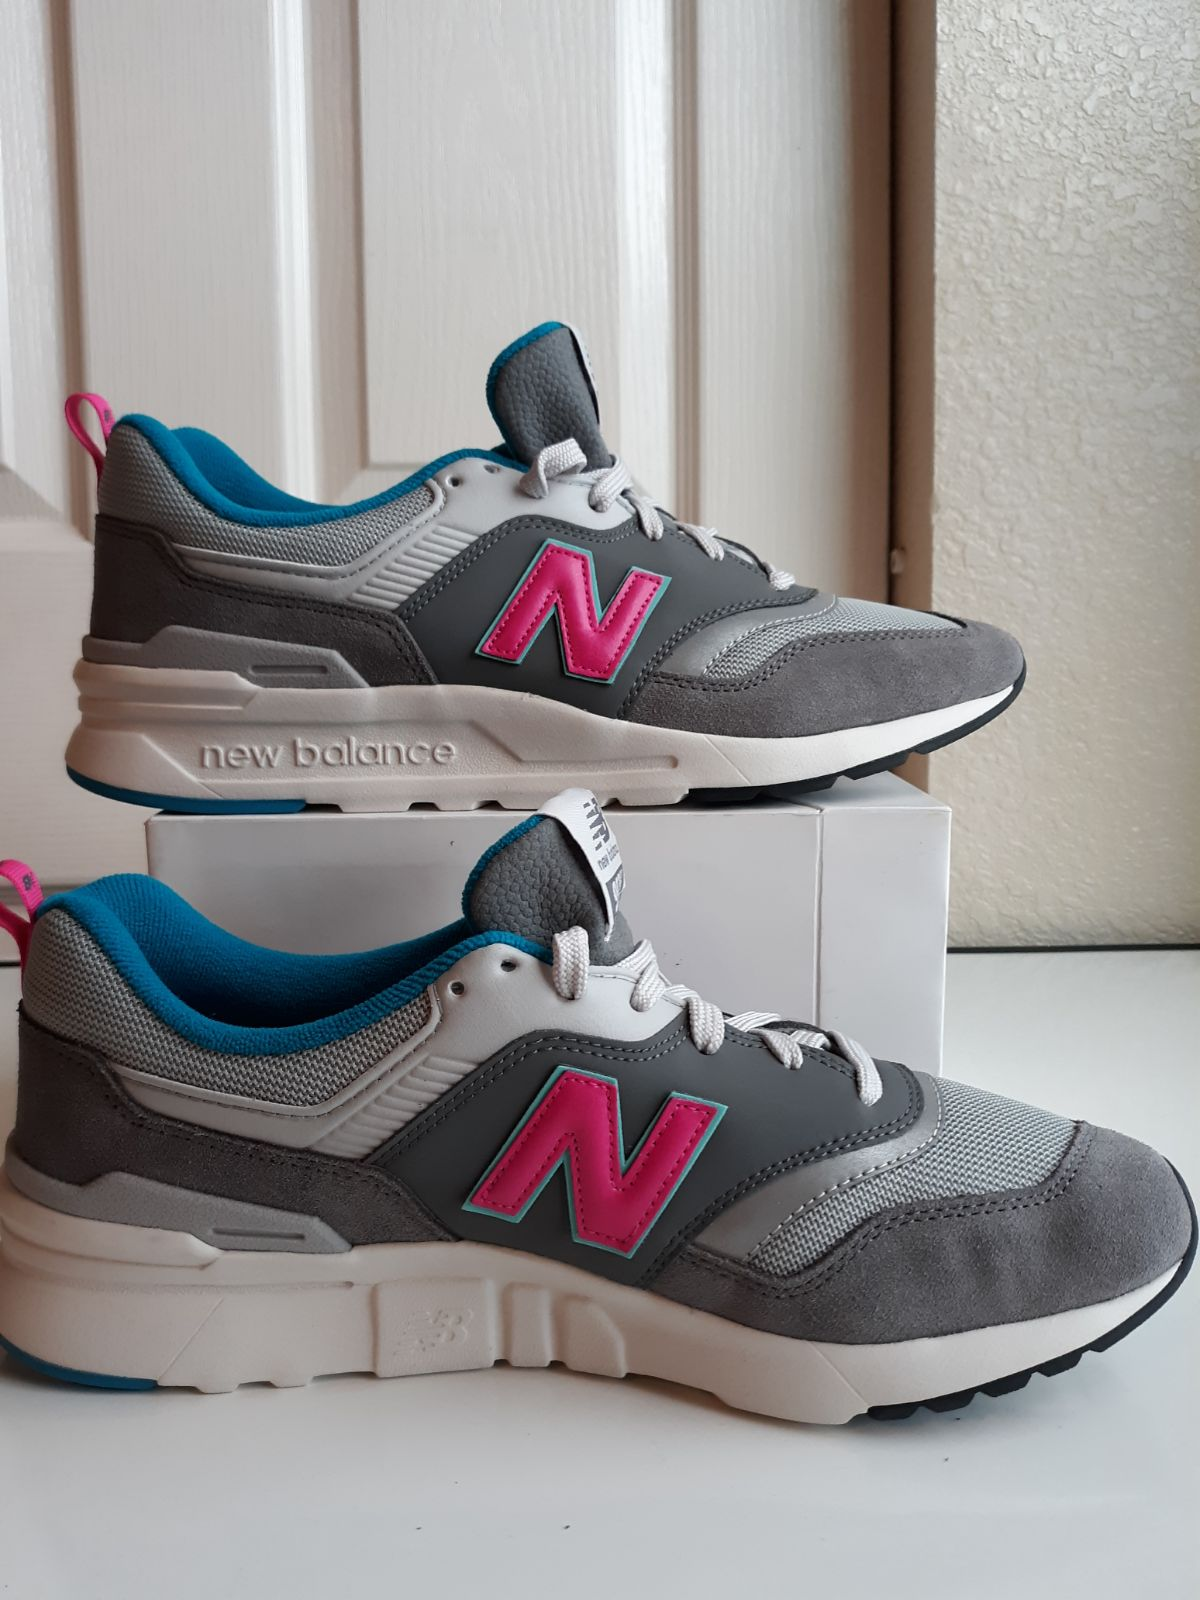 New Balance 997 Castlerock Men Size 10.5